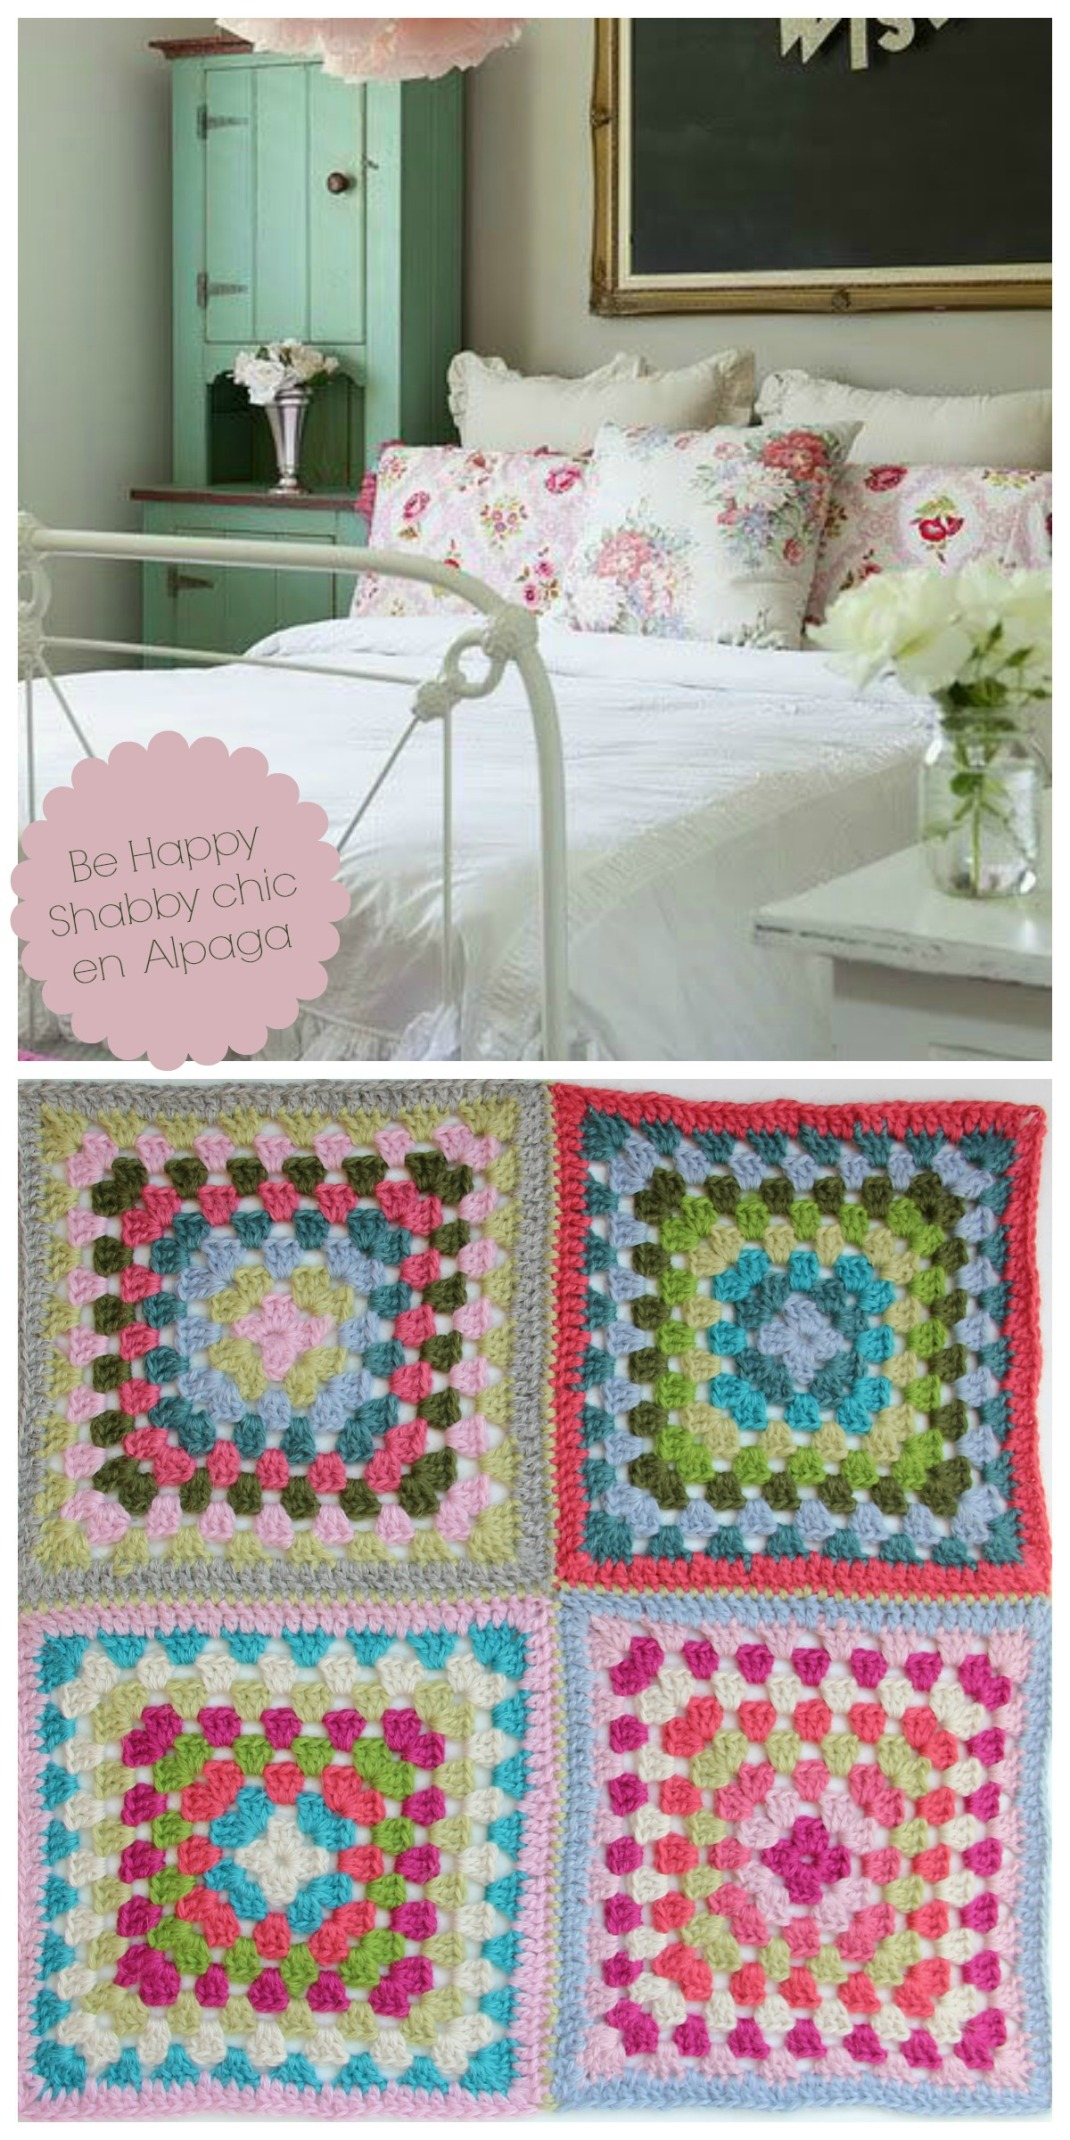 Le style Shabby Chic2